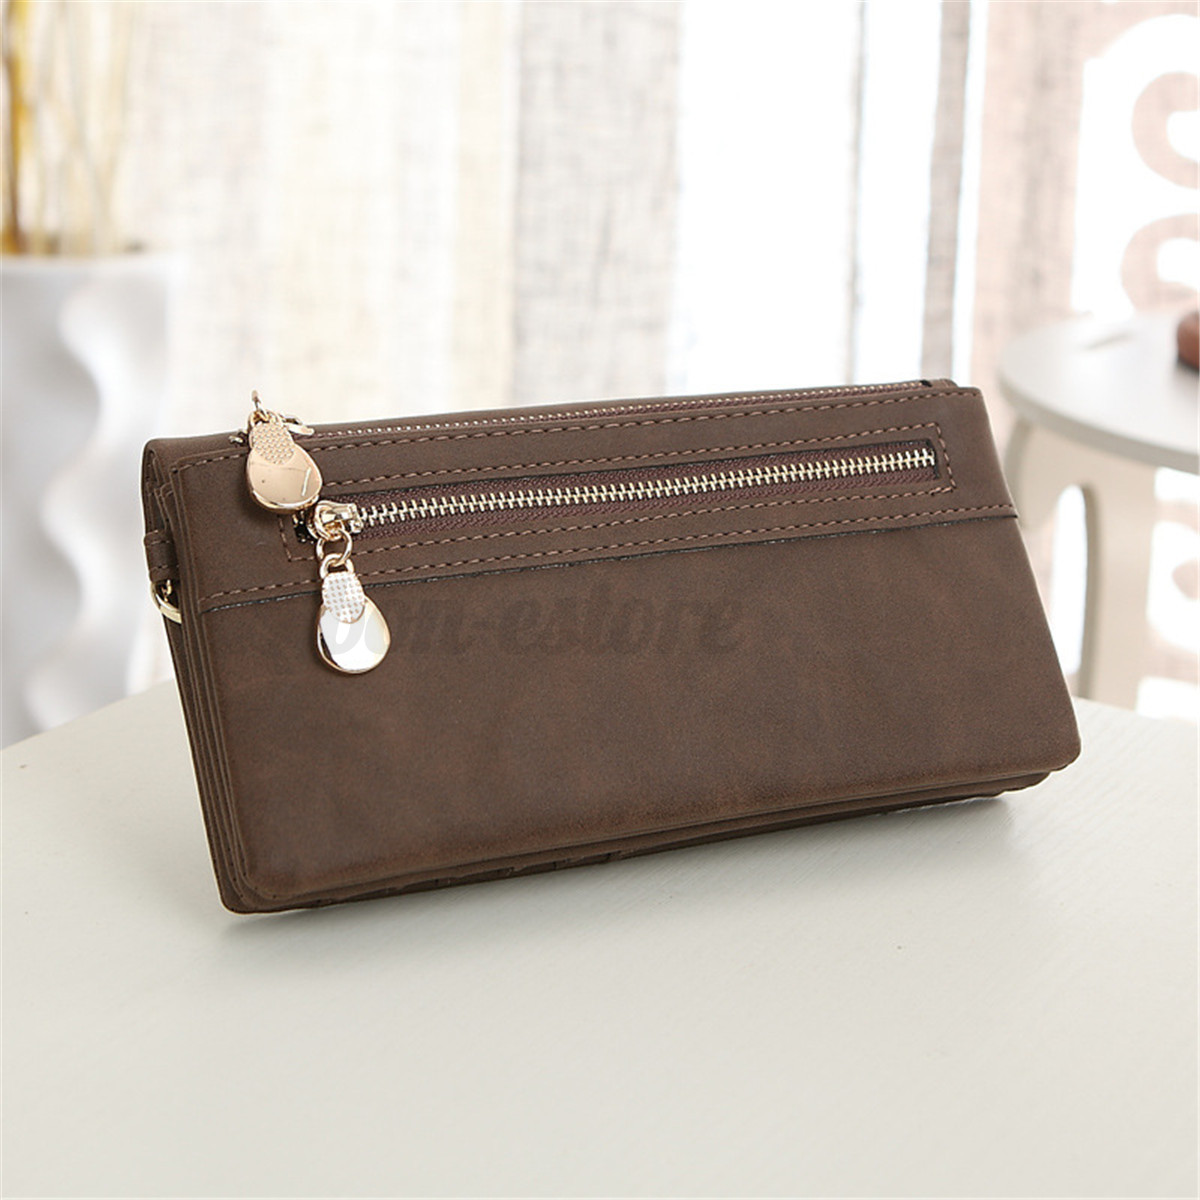 Women Wallet Wrist Card Coin Holder Long Wallet Clutch